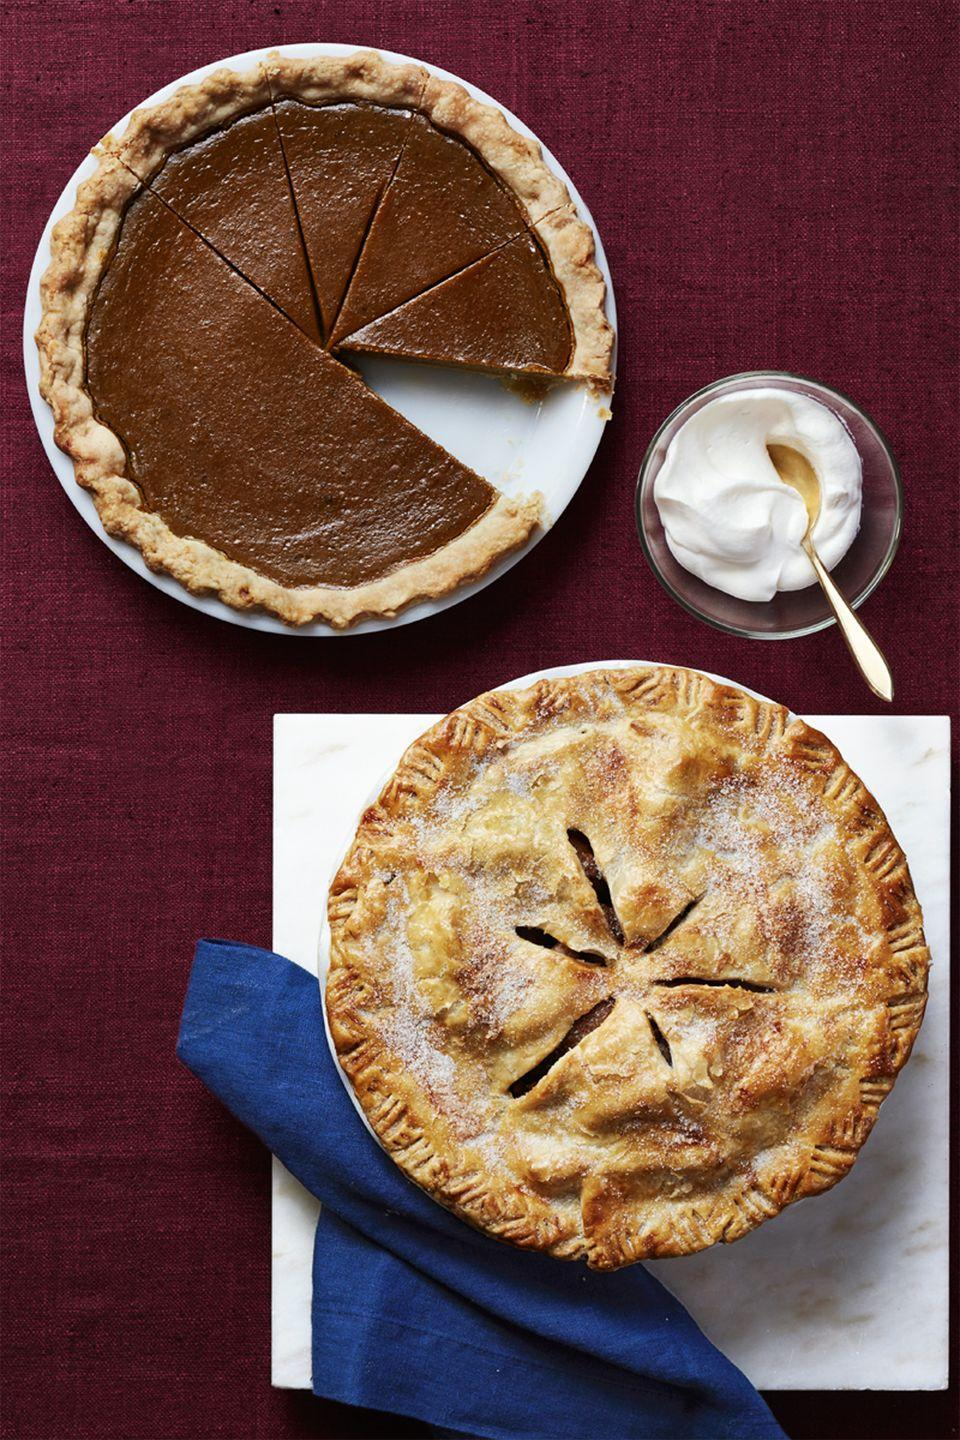 "<p>Each bite of this <a href=""https://www.womansday.com/content/thanksgiving-recipes/"" rel=""nofollow noopener"" target=""_blank"" data-ylk=""slk:classic Thanksgiving dessert"" class=""link rapid-noclick-resp"">classic Thanksgiving dessert</a> will deliver the perfect hint of warm, spicy flavor. </p><p><a href=""https://www.womansday.com/food-recipes/food-drinks/recipes/a56478/pumpkin-pie-recipe/"" rel=""nofollow noopener"" target=""_blank"" data-ylk=""slk:Get the Pumpkin Pie recipe."" class=""link rapid-noclick-resp""><strong><em>Get the Pumpkin Pie recipe. </em></strong> </a></p><p><strong>What You'll Need: </strong><a href=""https://www.amazon.com/USA-Pan-Patriot-Bakeware-Aluminized/dp/B019ZDZIT0"" rel=""nofollow noopener"" target=""_blank"" data-ylk=""slk:Pie Pan"" class=""link rapid-noclick-resp"">Pie Pan</a> ($25, Amazon)<br></p>"